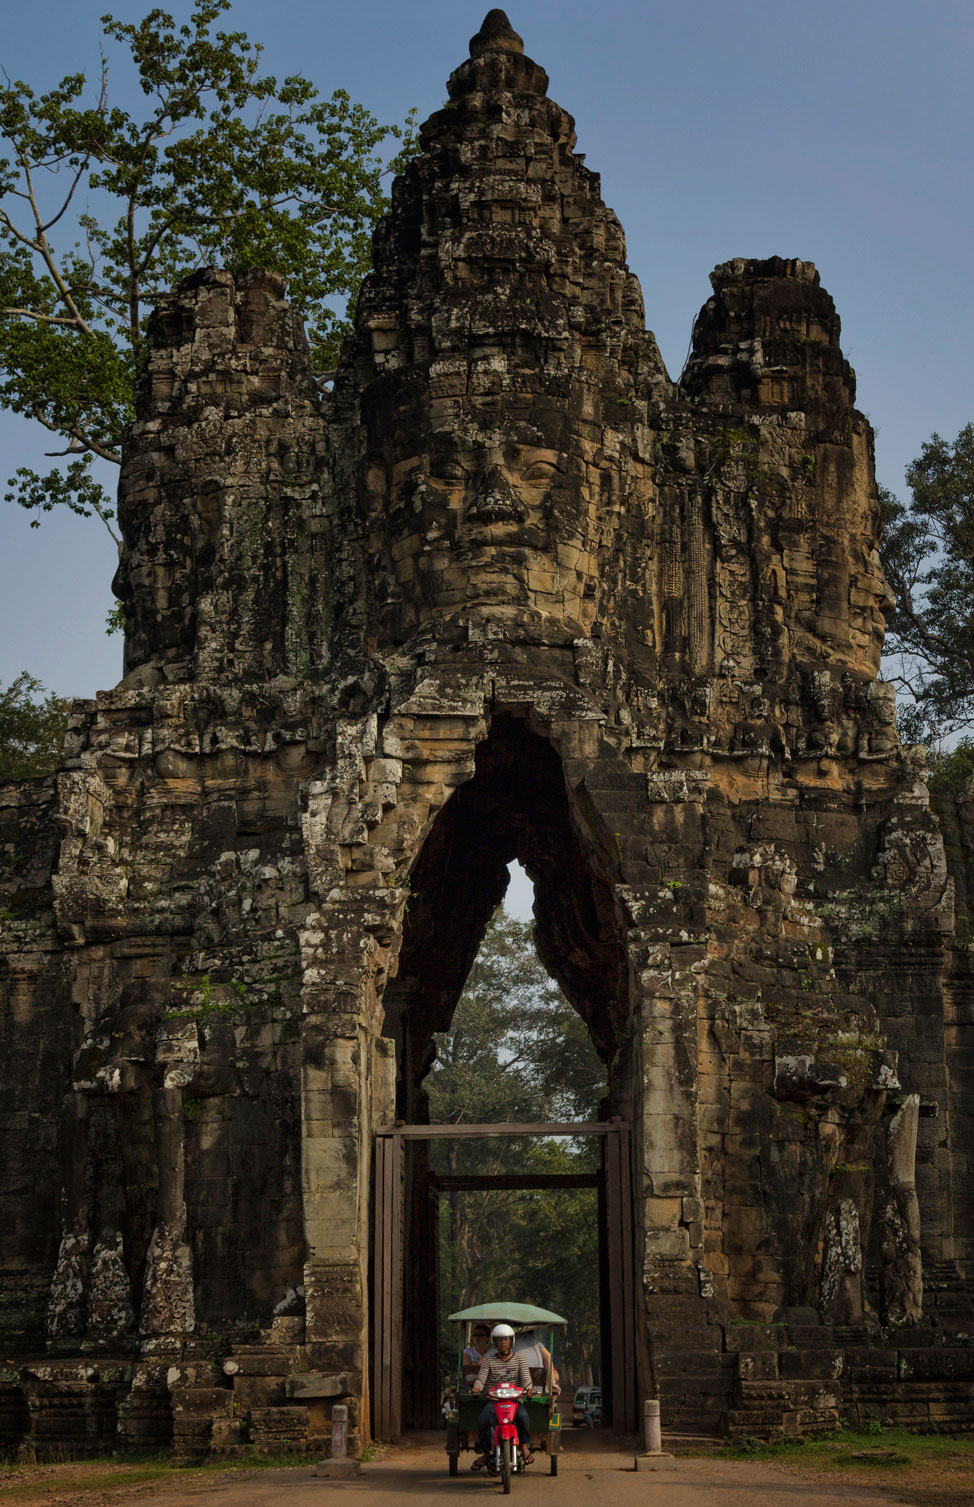 The South Gate into Angkor Thom